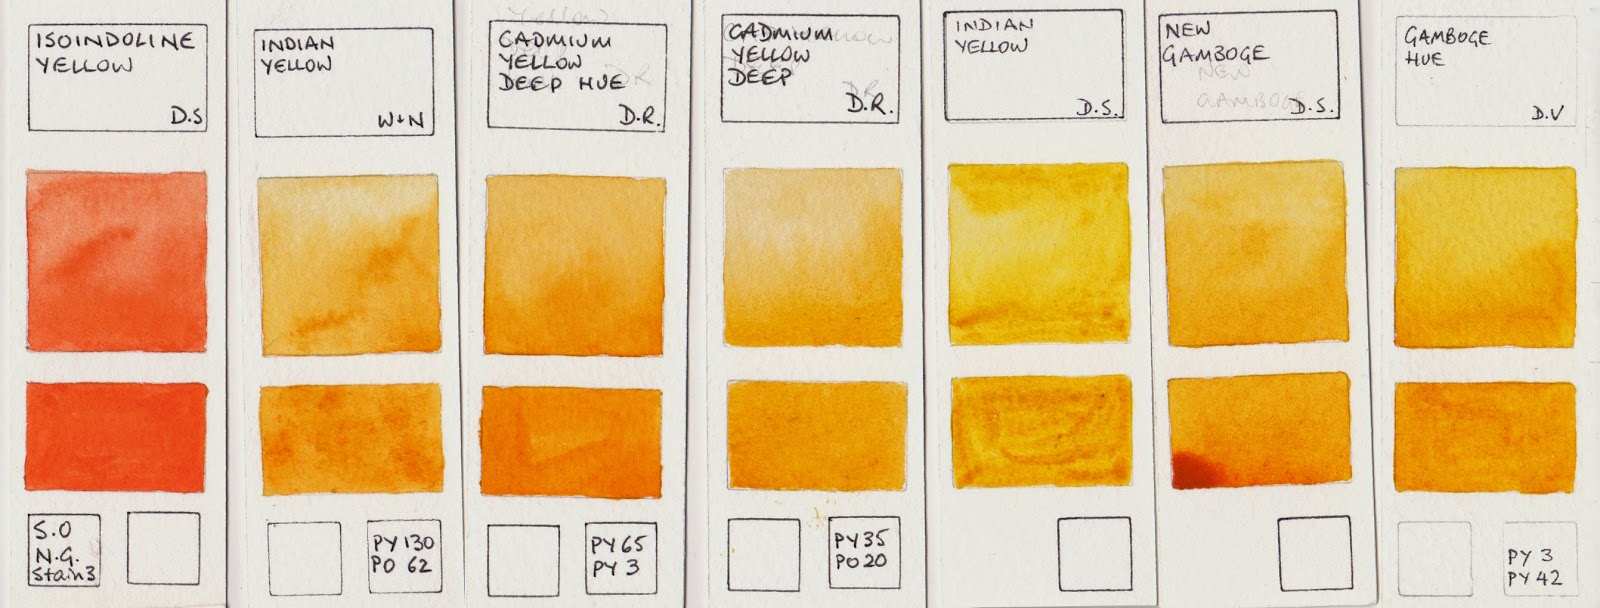 Jane Blundell Artist: Watercolour Comparisons 7 - Yellows